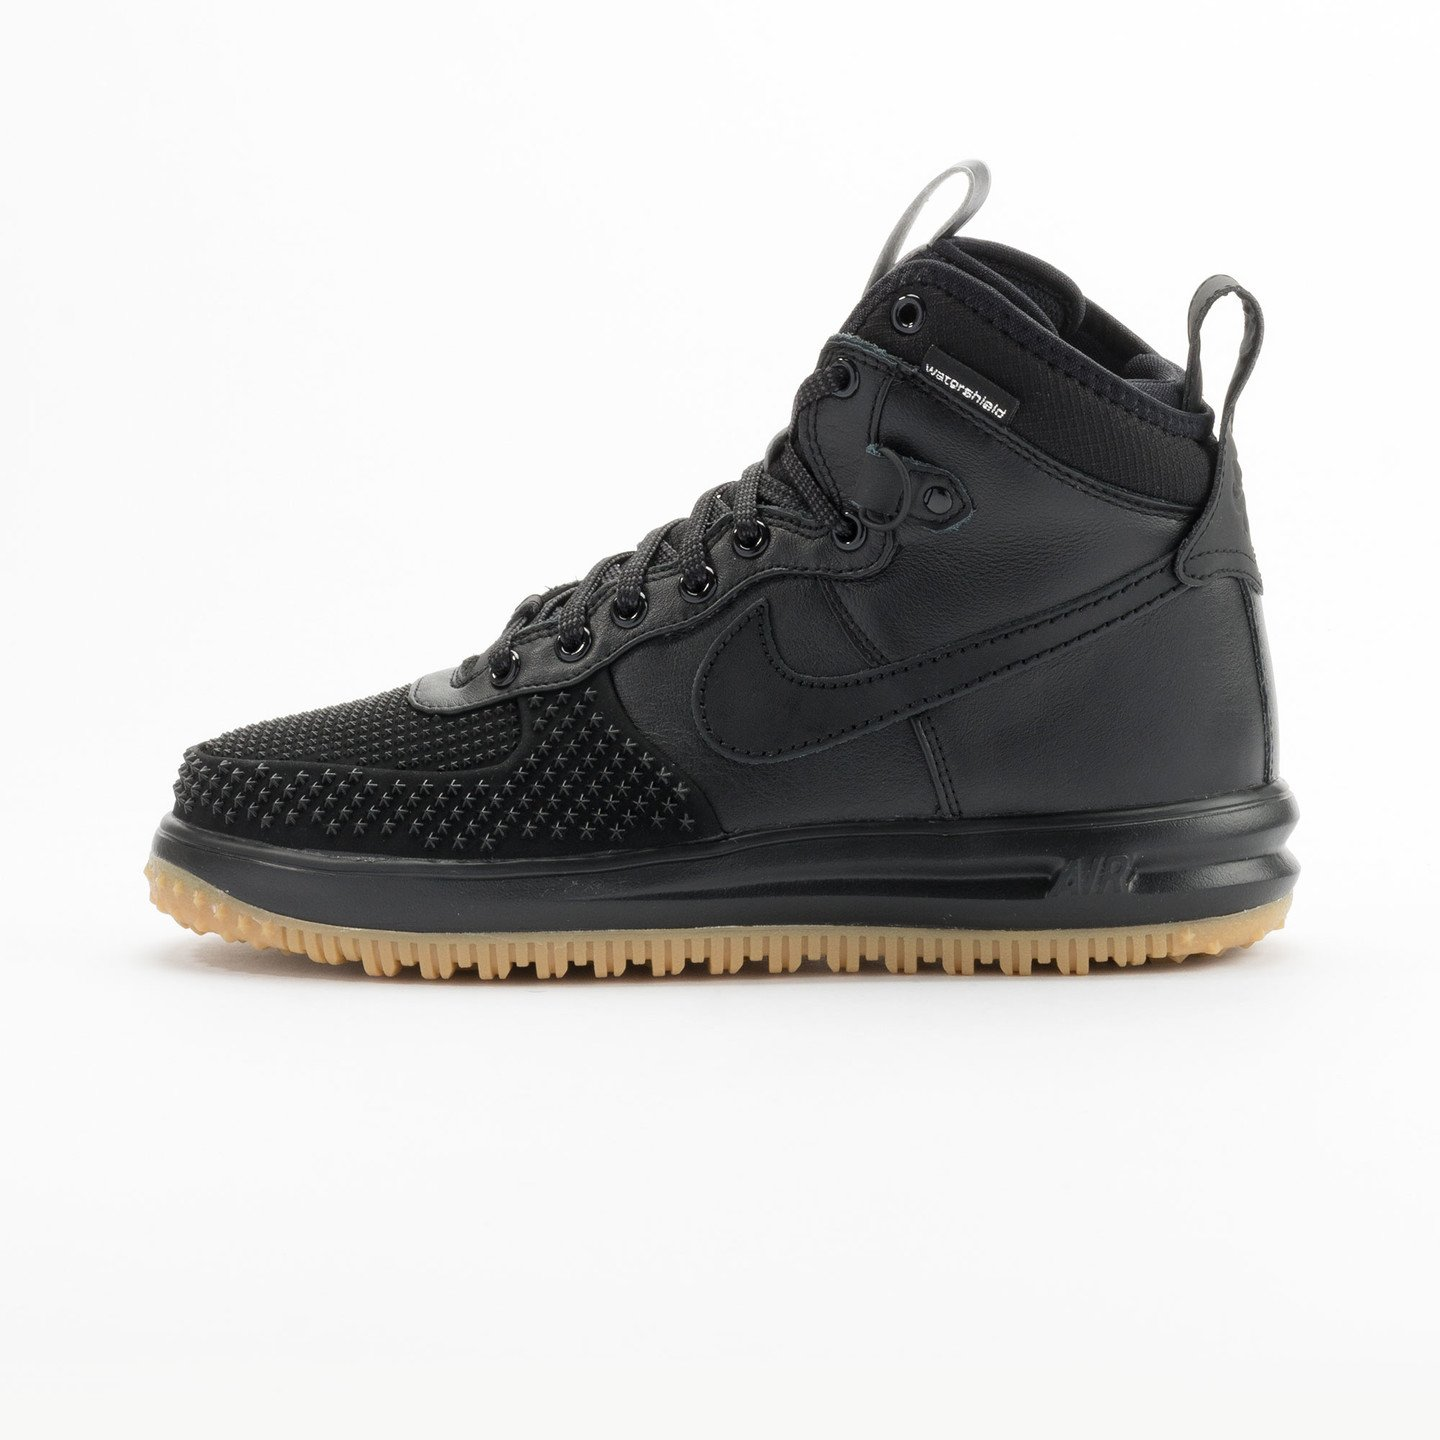 Nike Lunar Force 1 Duckboot Black / Black / Gum 805899-003-46